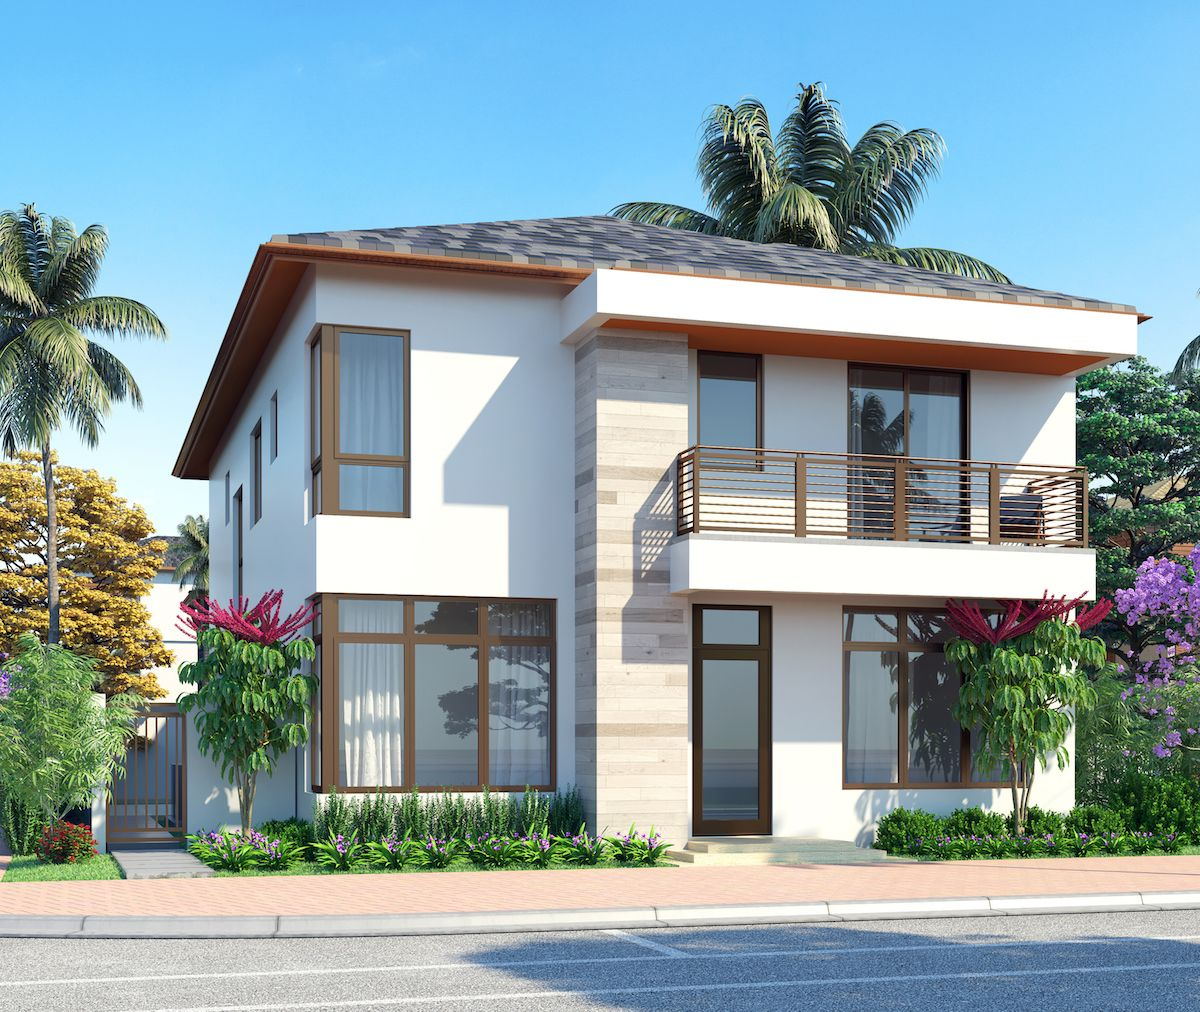 Single Family for Sale at Canarias At Downtown Doral - Model B - Two Story 8333 Nw 53rd Street Suite #102 Miami, Florida 33166 United States